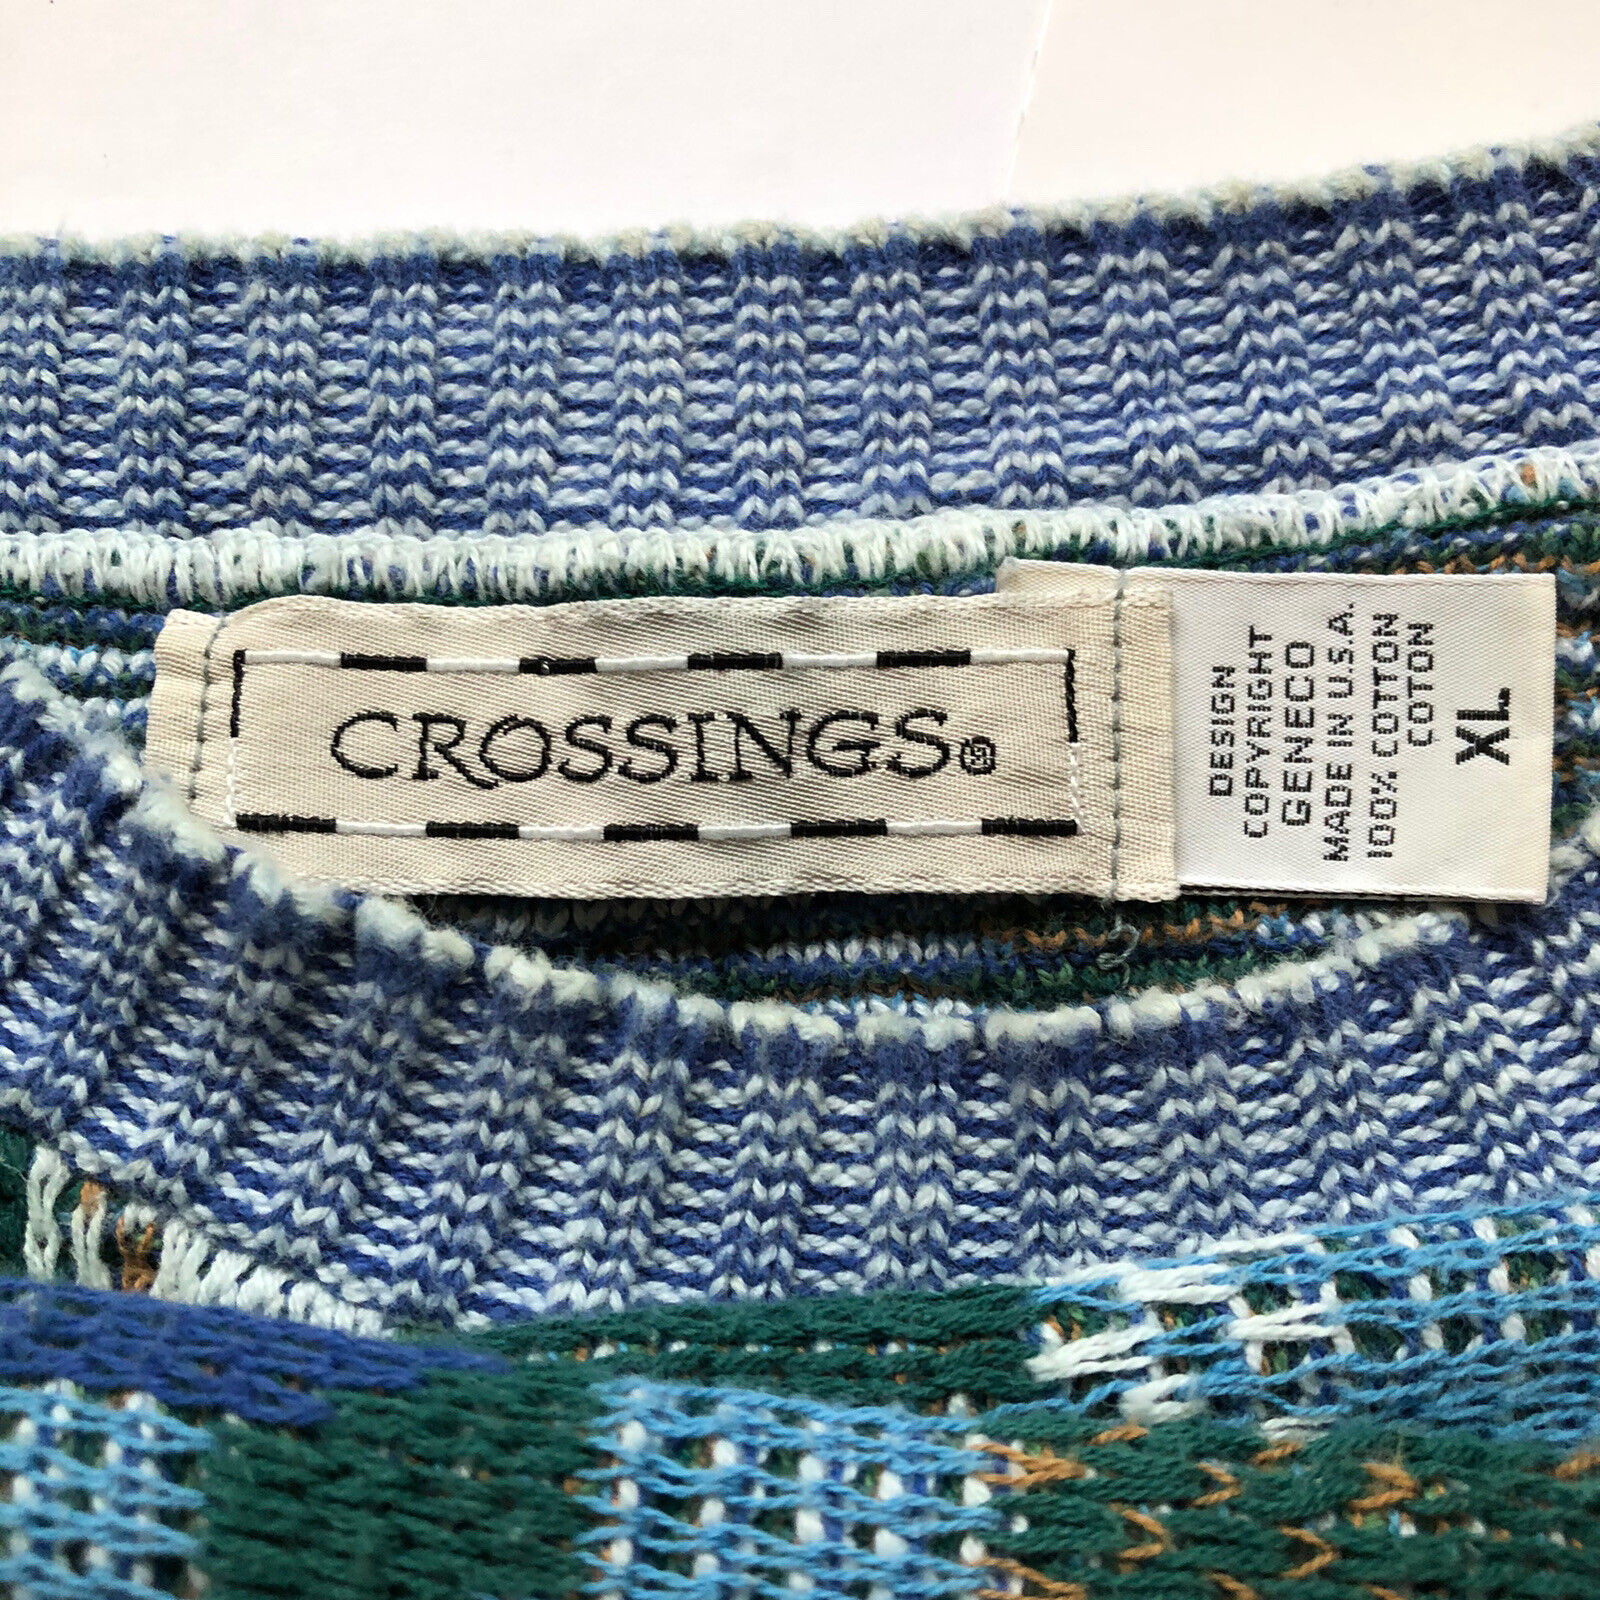 80s Crossings Fine Line geometric pattern knit cotton Navy /& White crew neck pullover Sweater tag XL made in USA  baggy retro vtg vintage